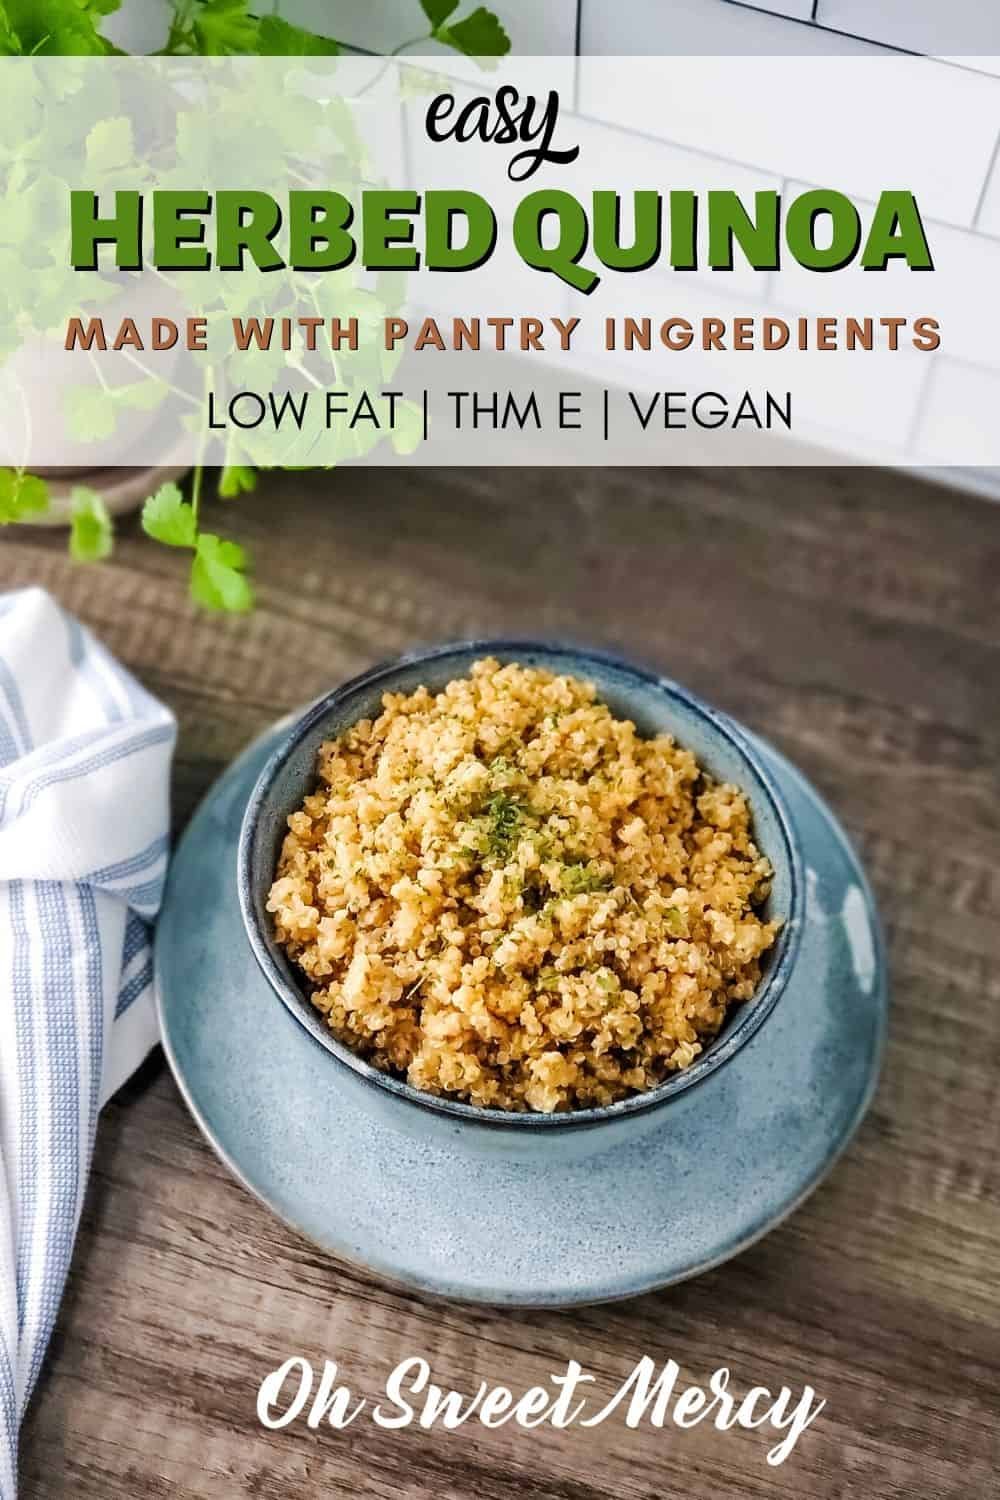 This Easy Herbed Quinoa makes the perfect low fat THM E side dish. Make it with wholesome pantry items, it's quick and easy! #thm #lowfat #quinoa #pantrycooking